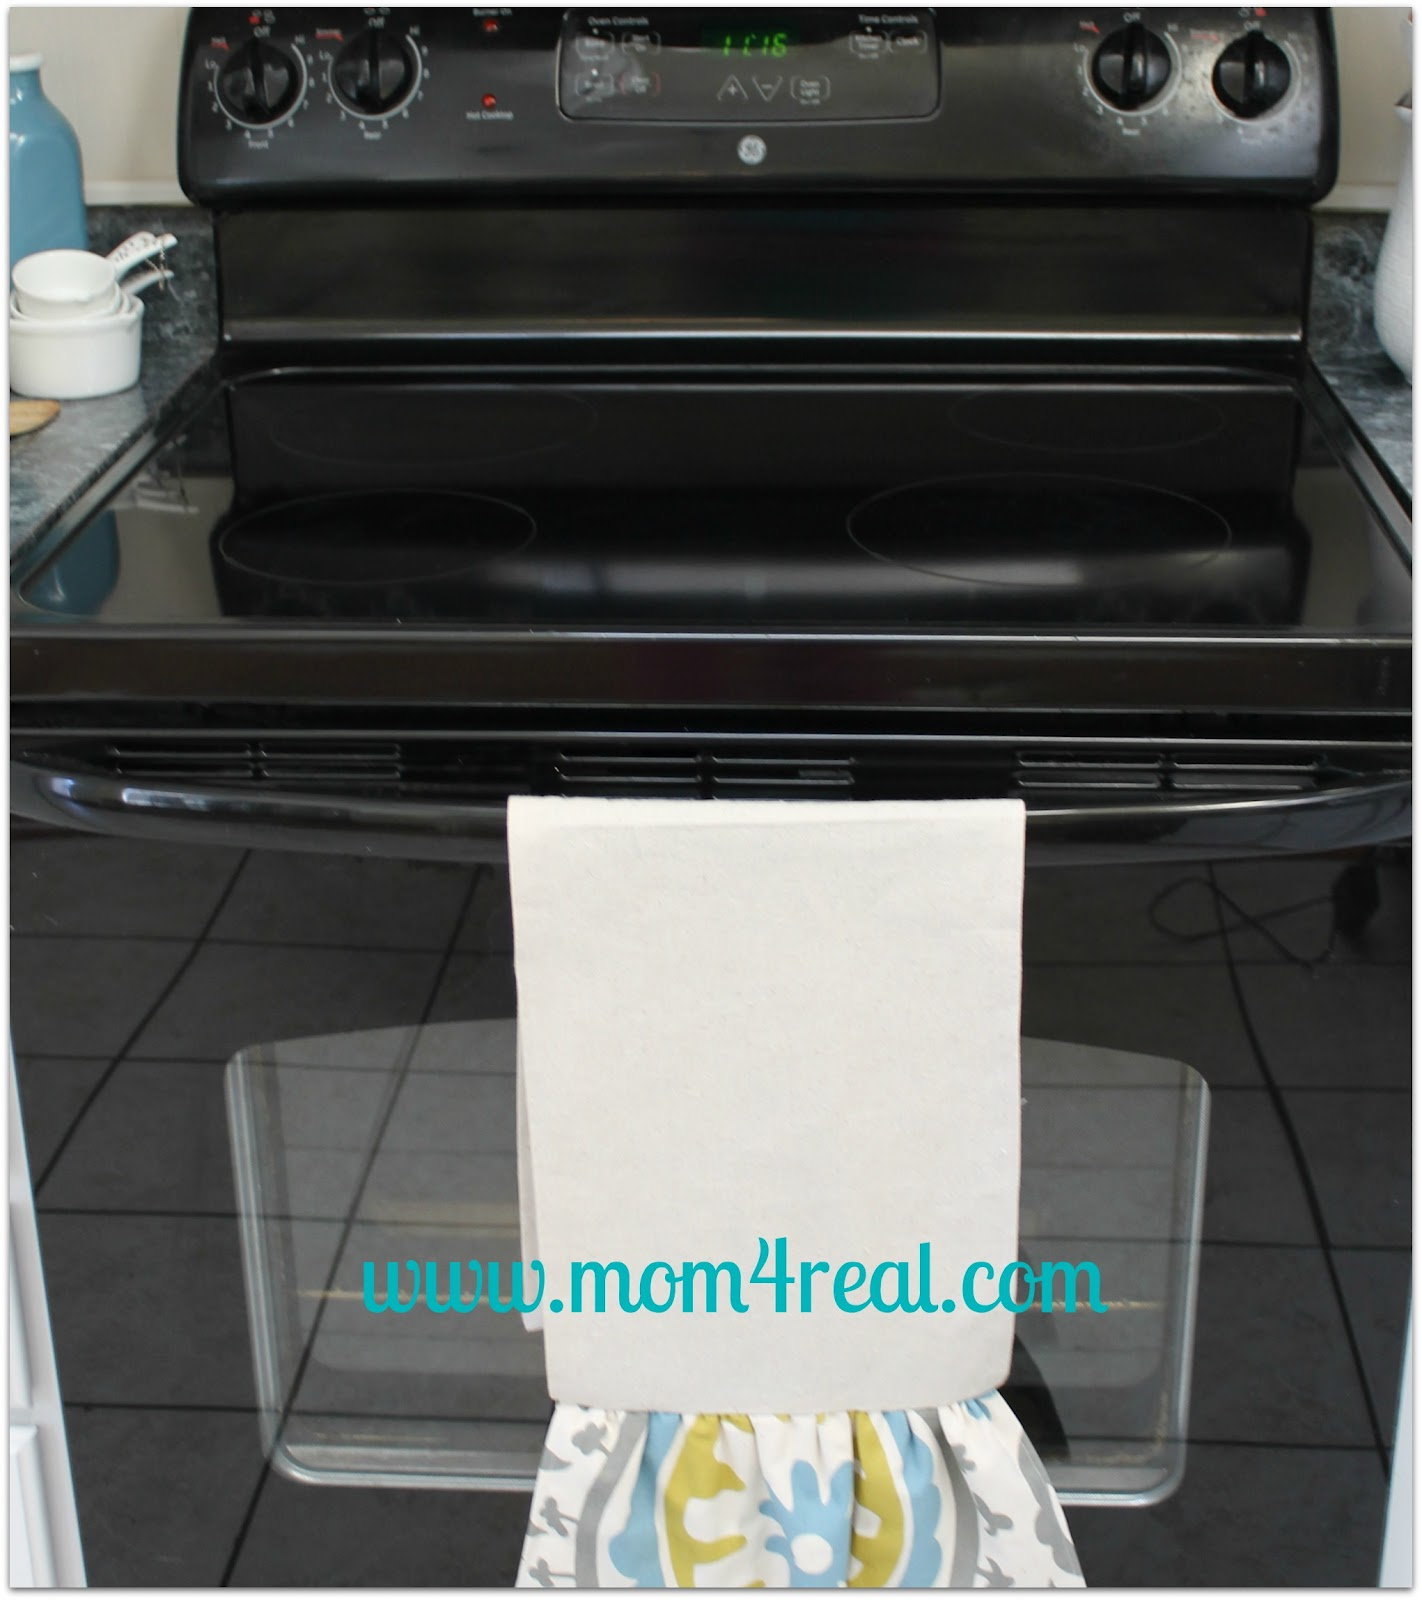 How To Clean Your Ceramic Stovetop - Mom 4 Real